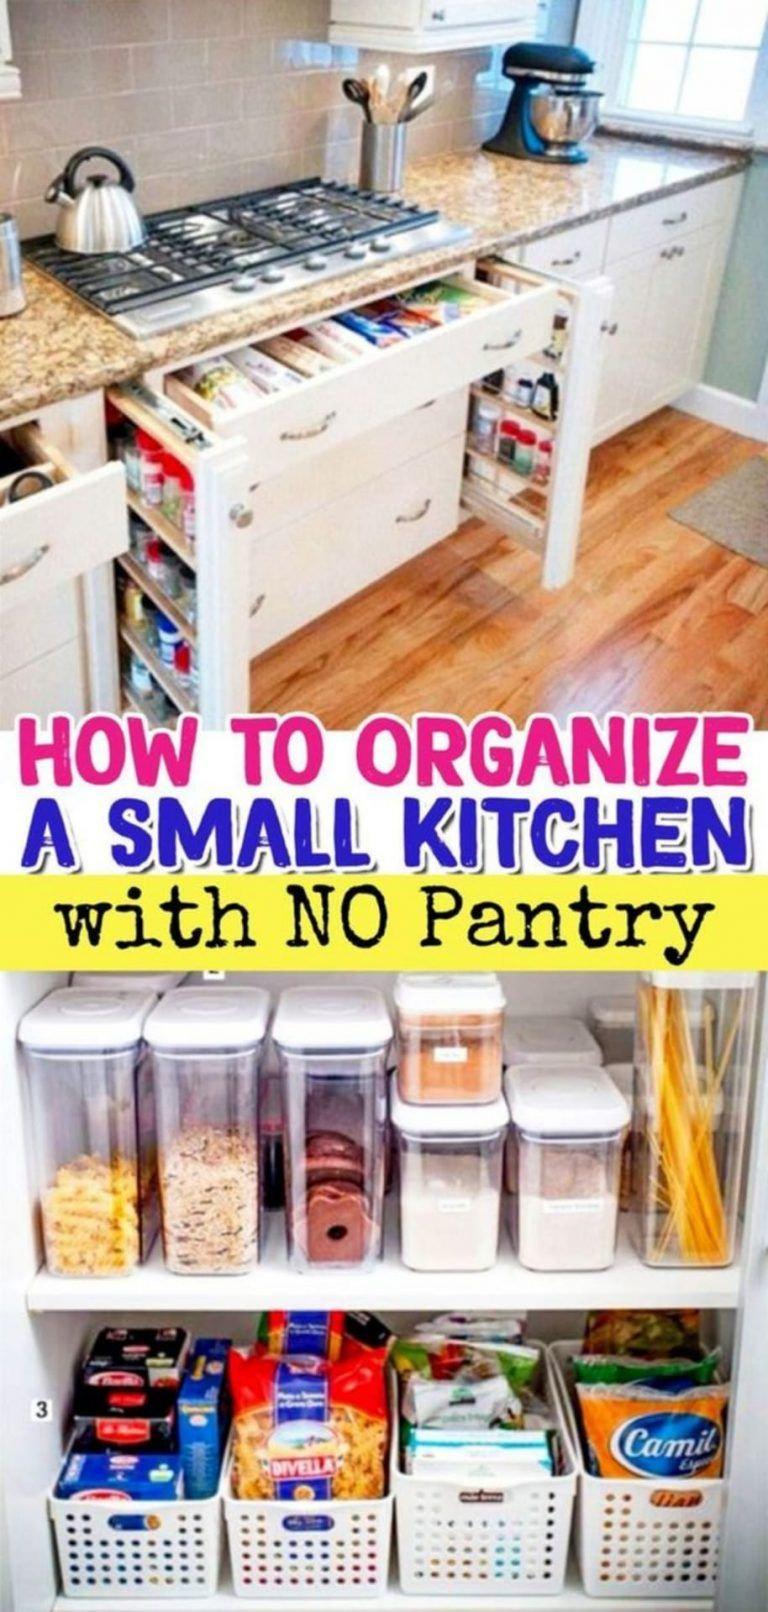 38 Creative Storage Solutions For Small Spaces Awesome Diy Ideas Kitchen Without Pantry No Pantry Solutions Kitchen Organization Diy